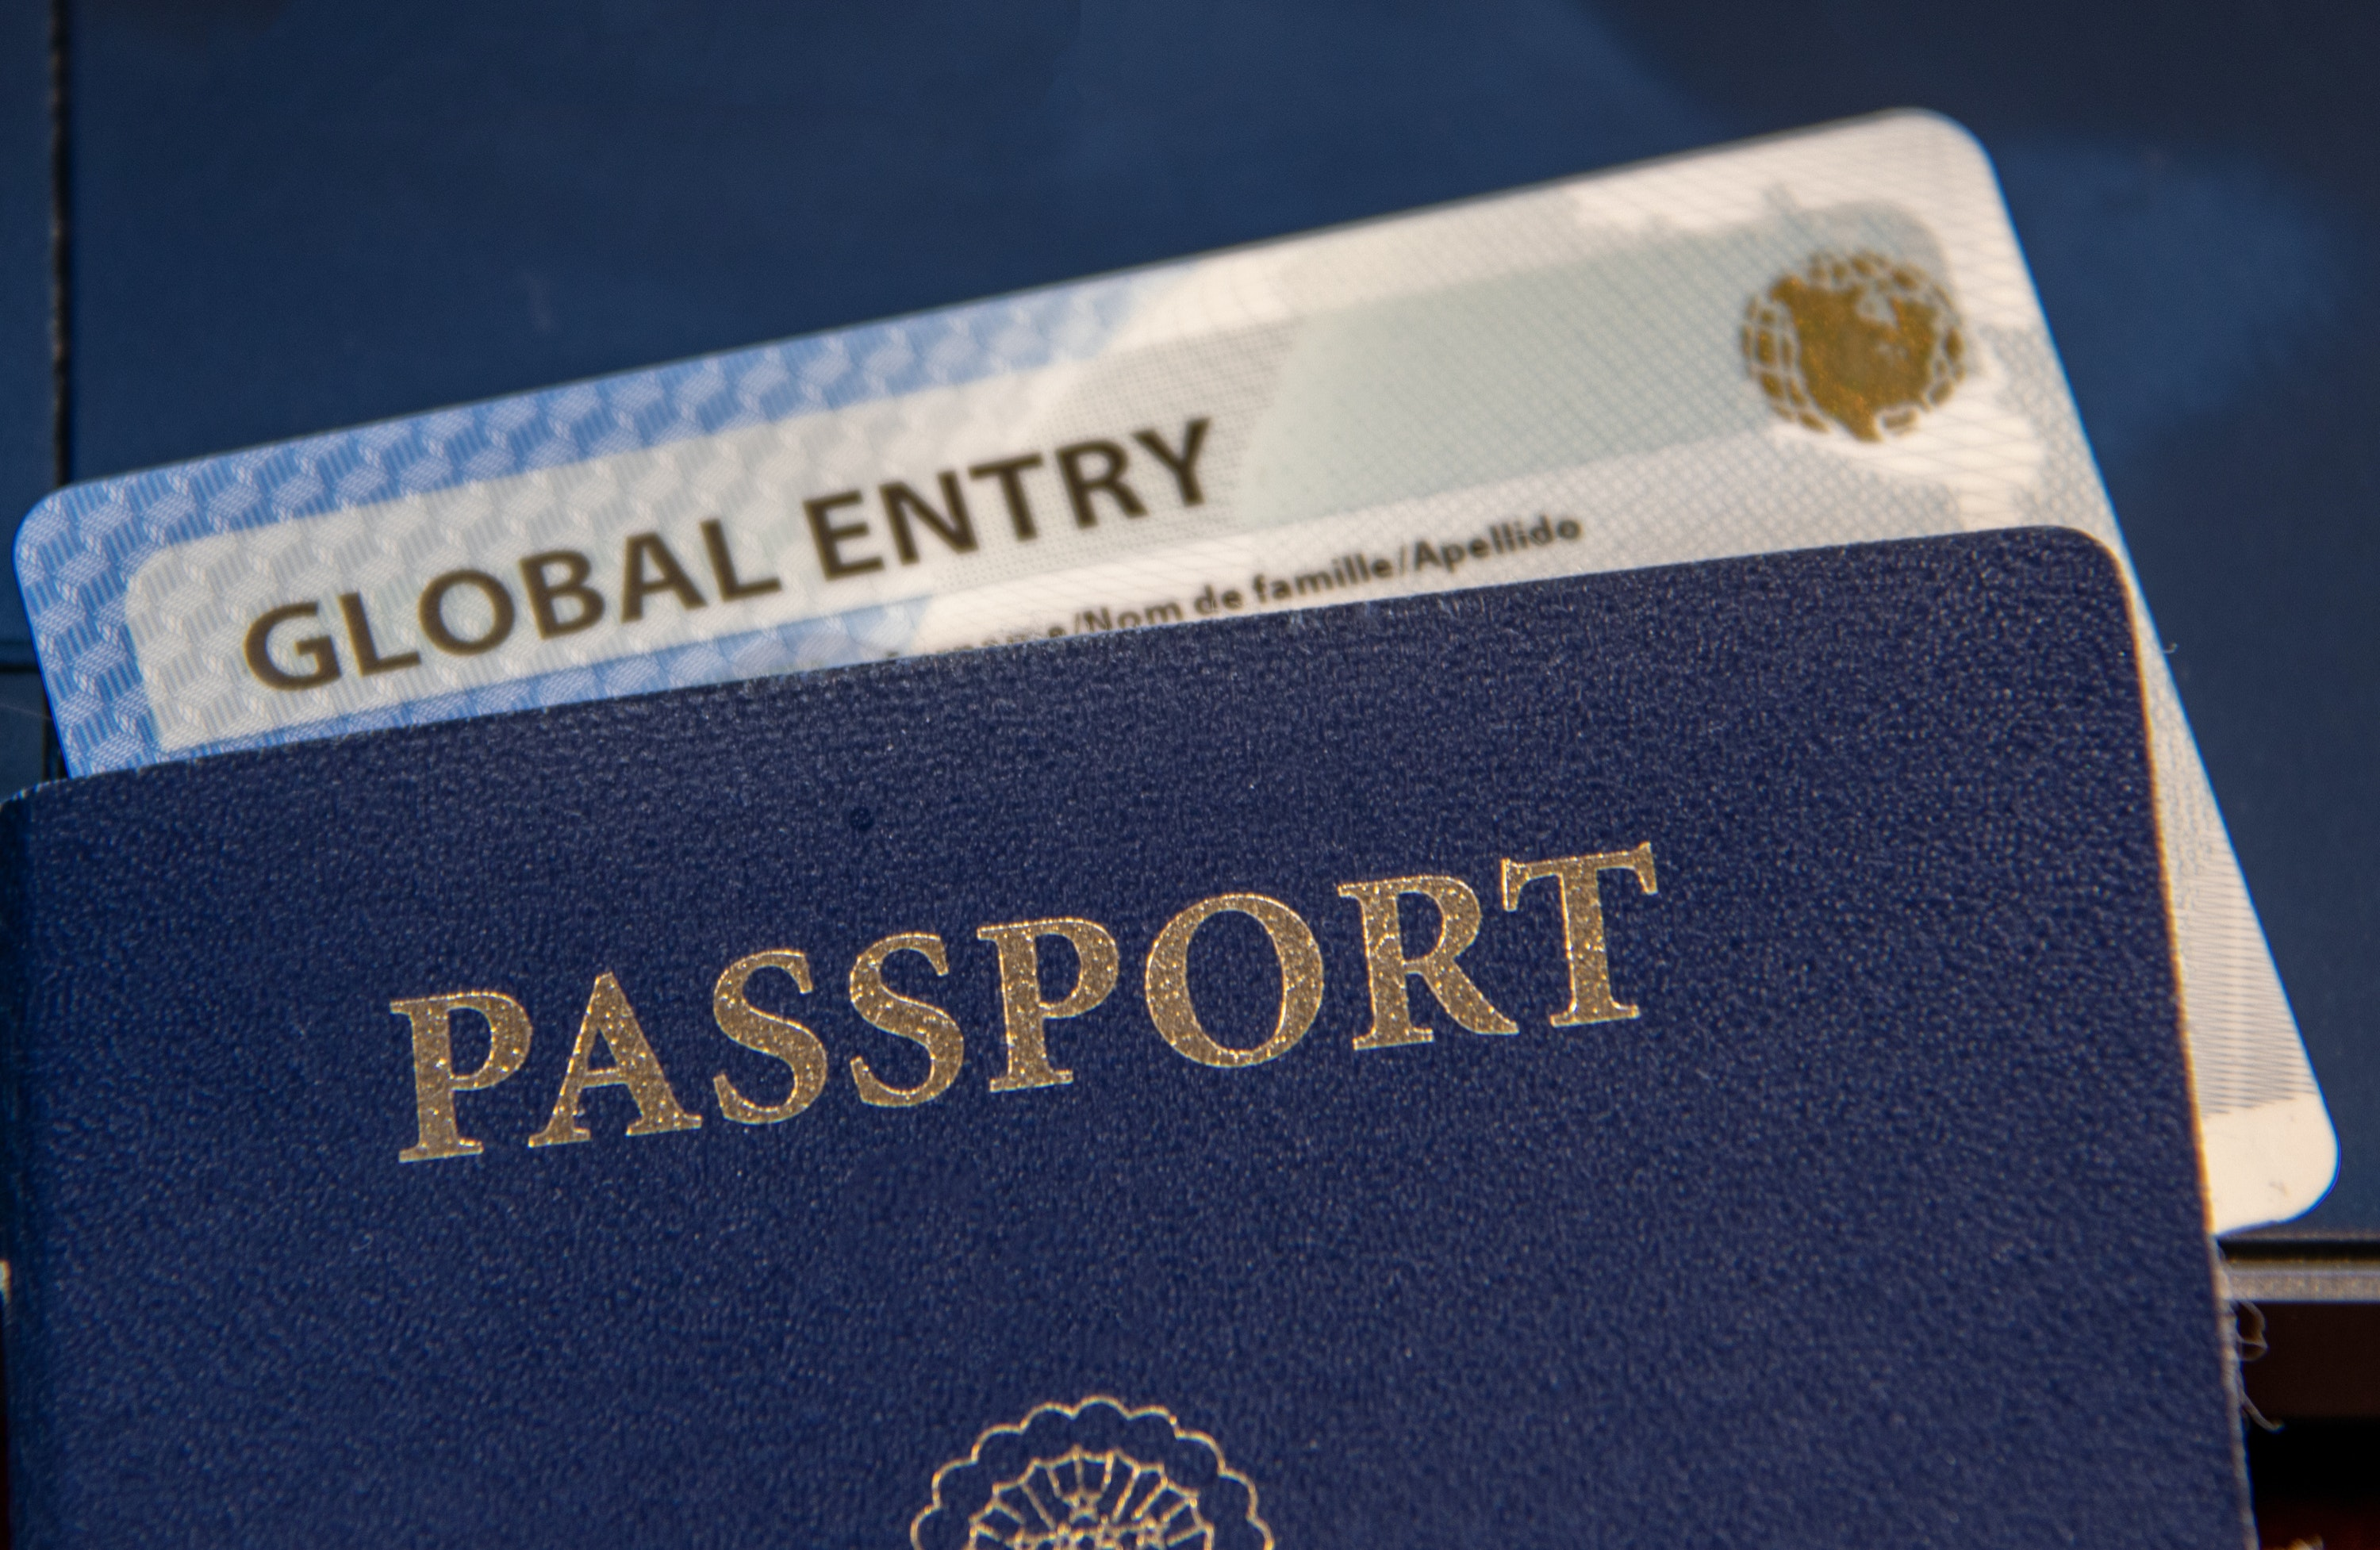 If you renew your Global Entry, you'll need to update your new Known Traveler number in your frequent flier profiles, as well.